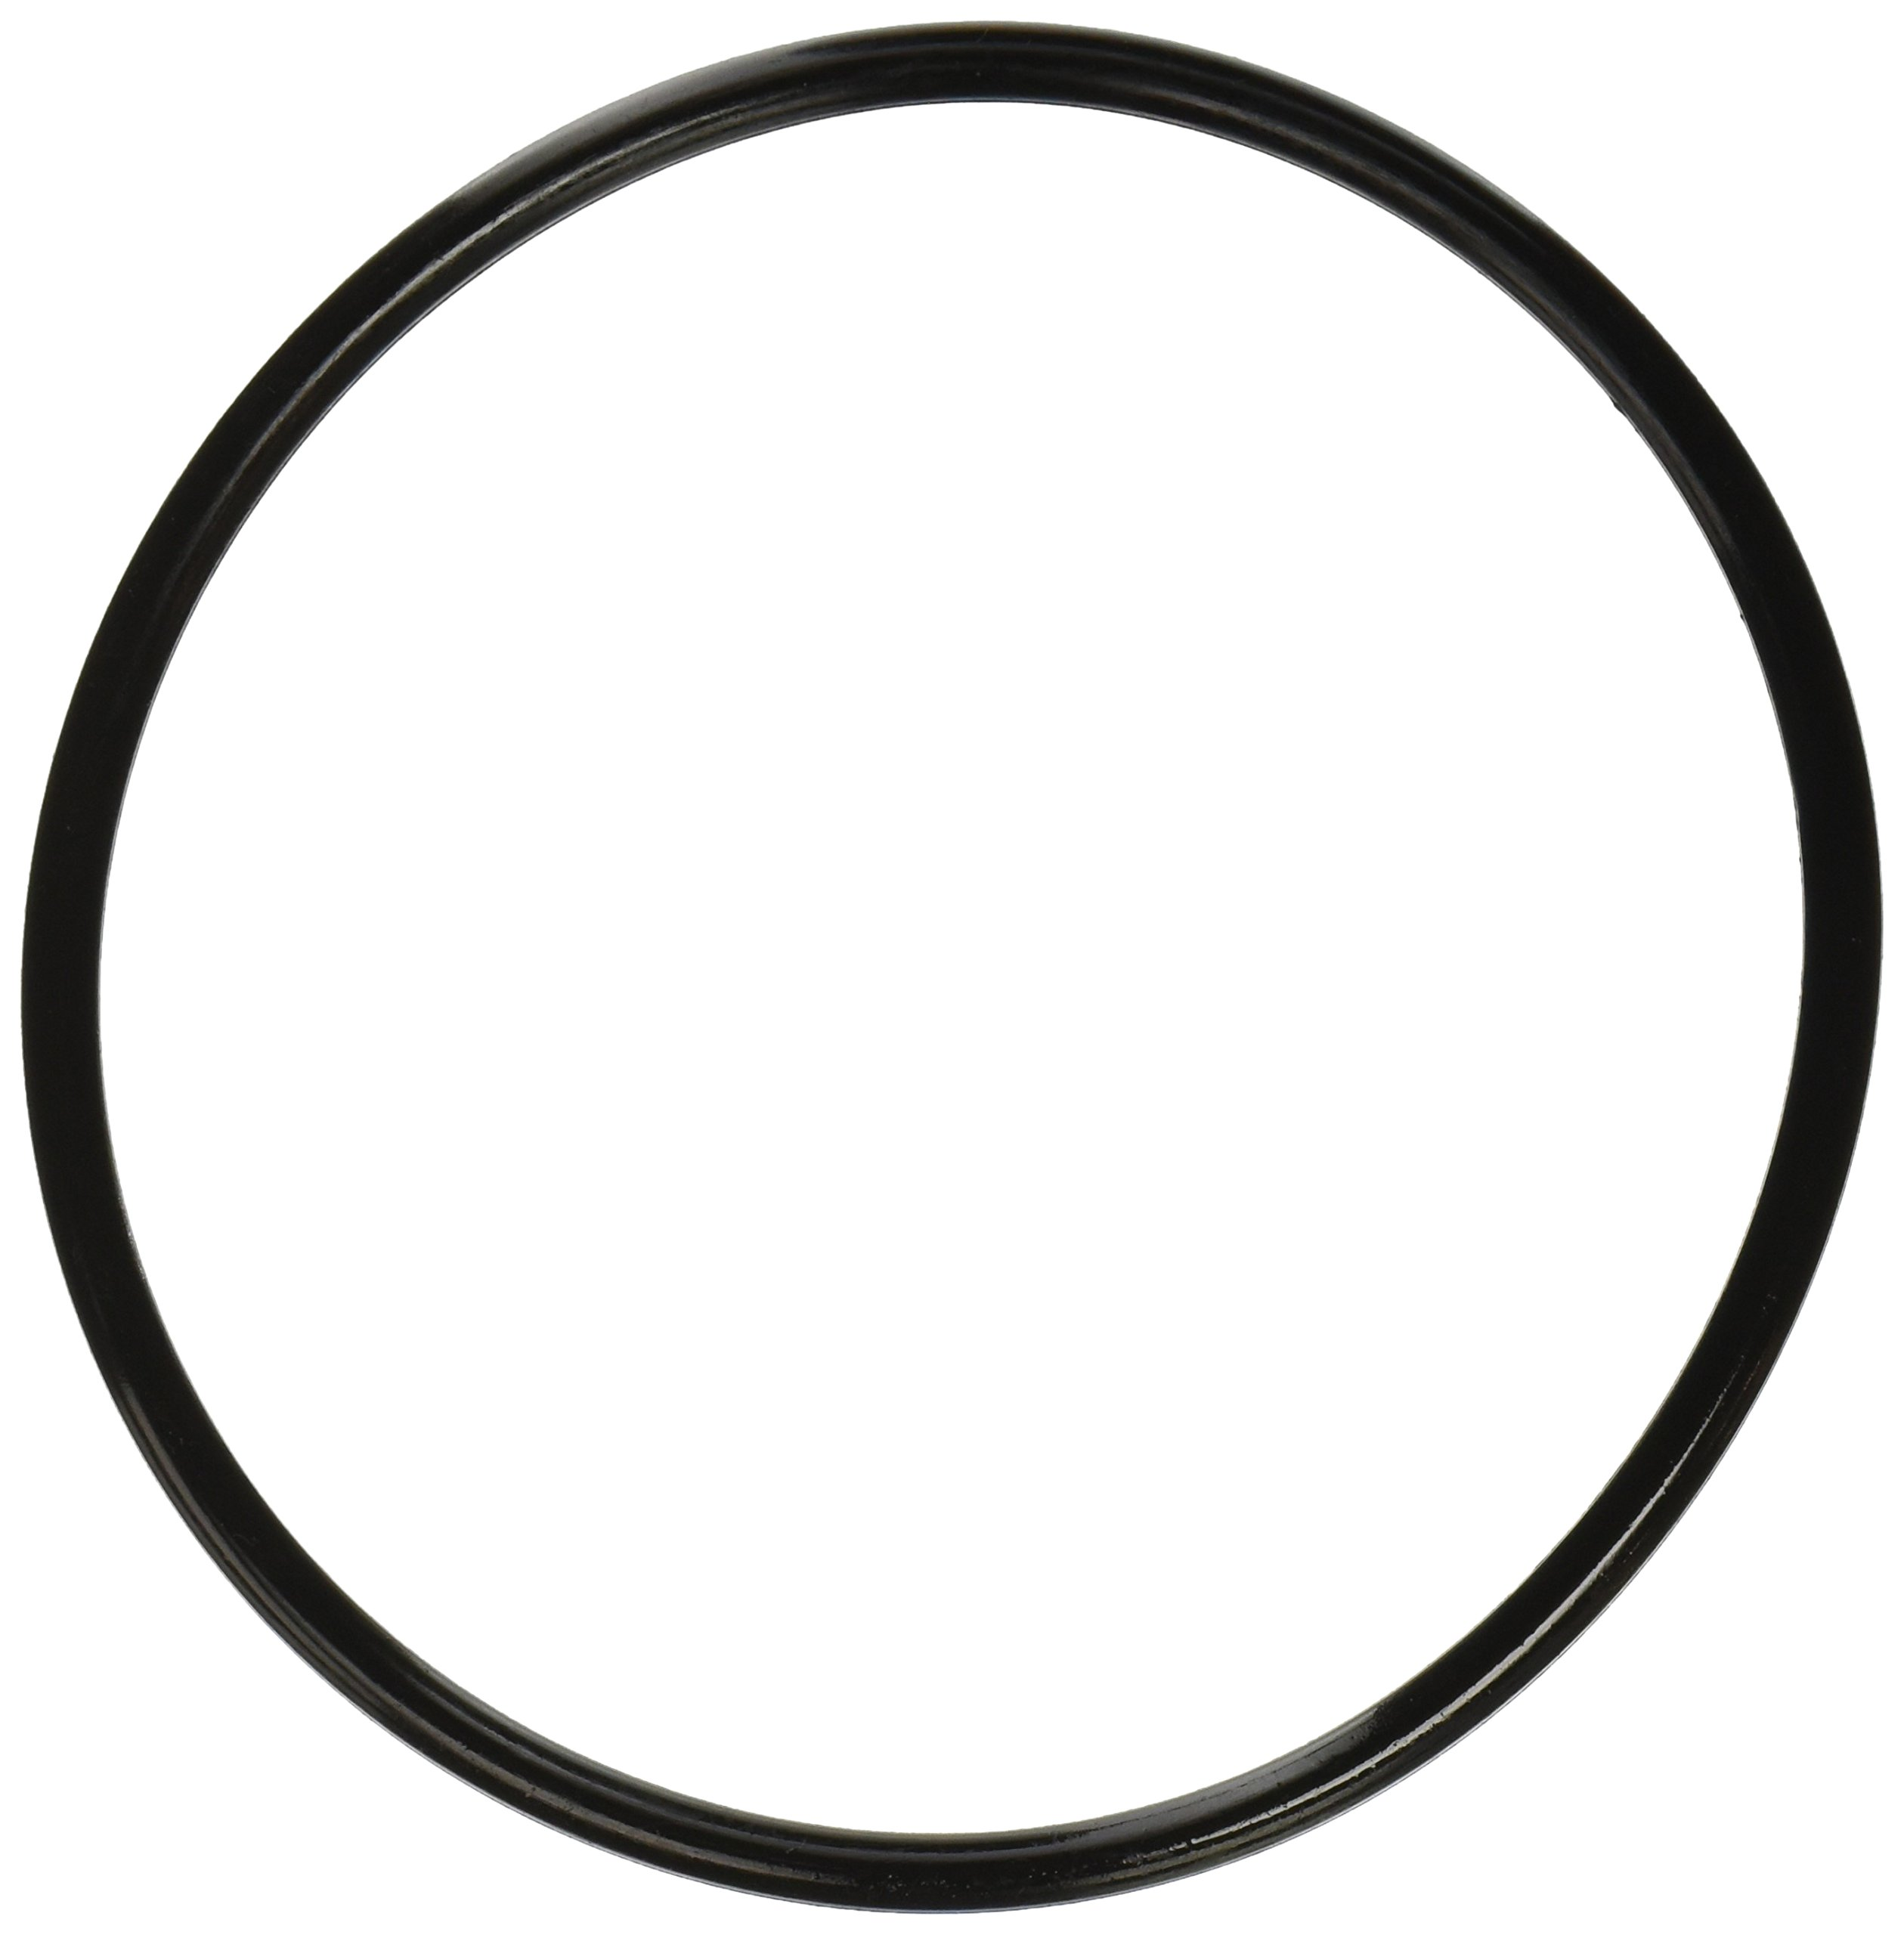 Pentair 350013 Lid O-Ring Replacement Pool and Spa Pump